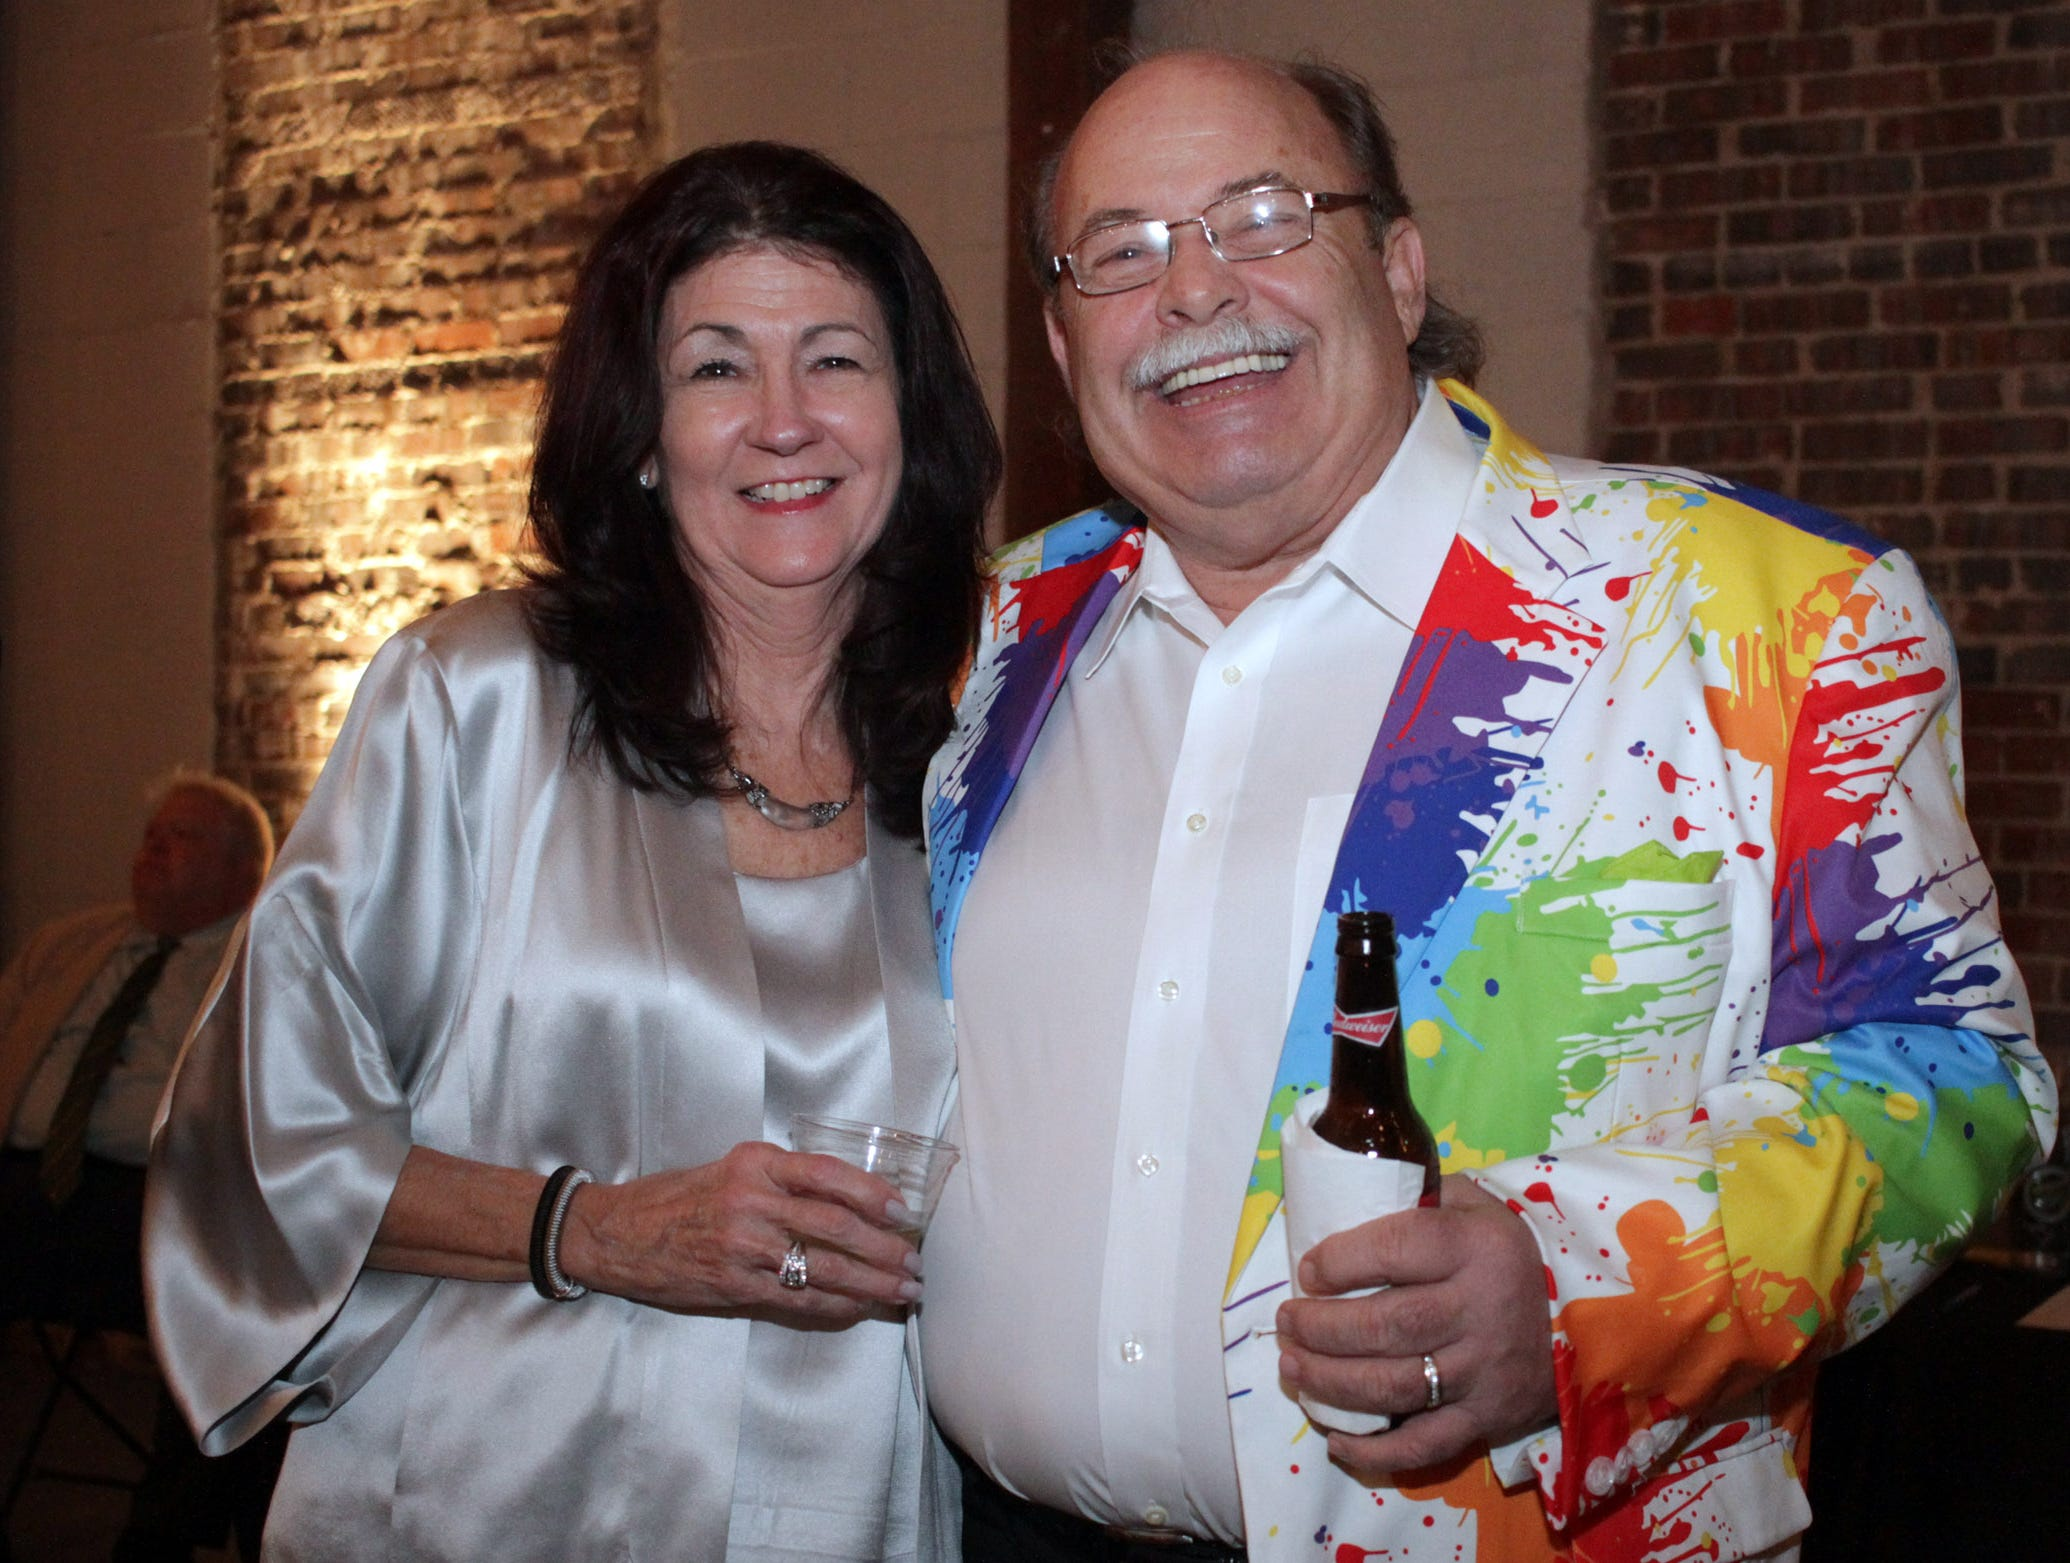 Barbara Zinser and Chris Chaplton at the Gold and Green Gala benefitting Gallatin High School on Saturday, March 9, 2019.